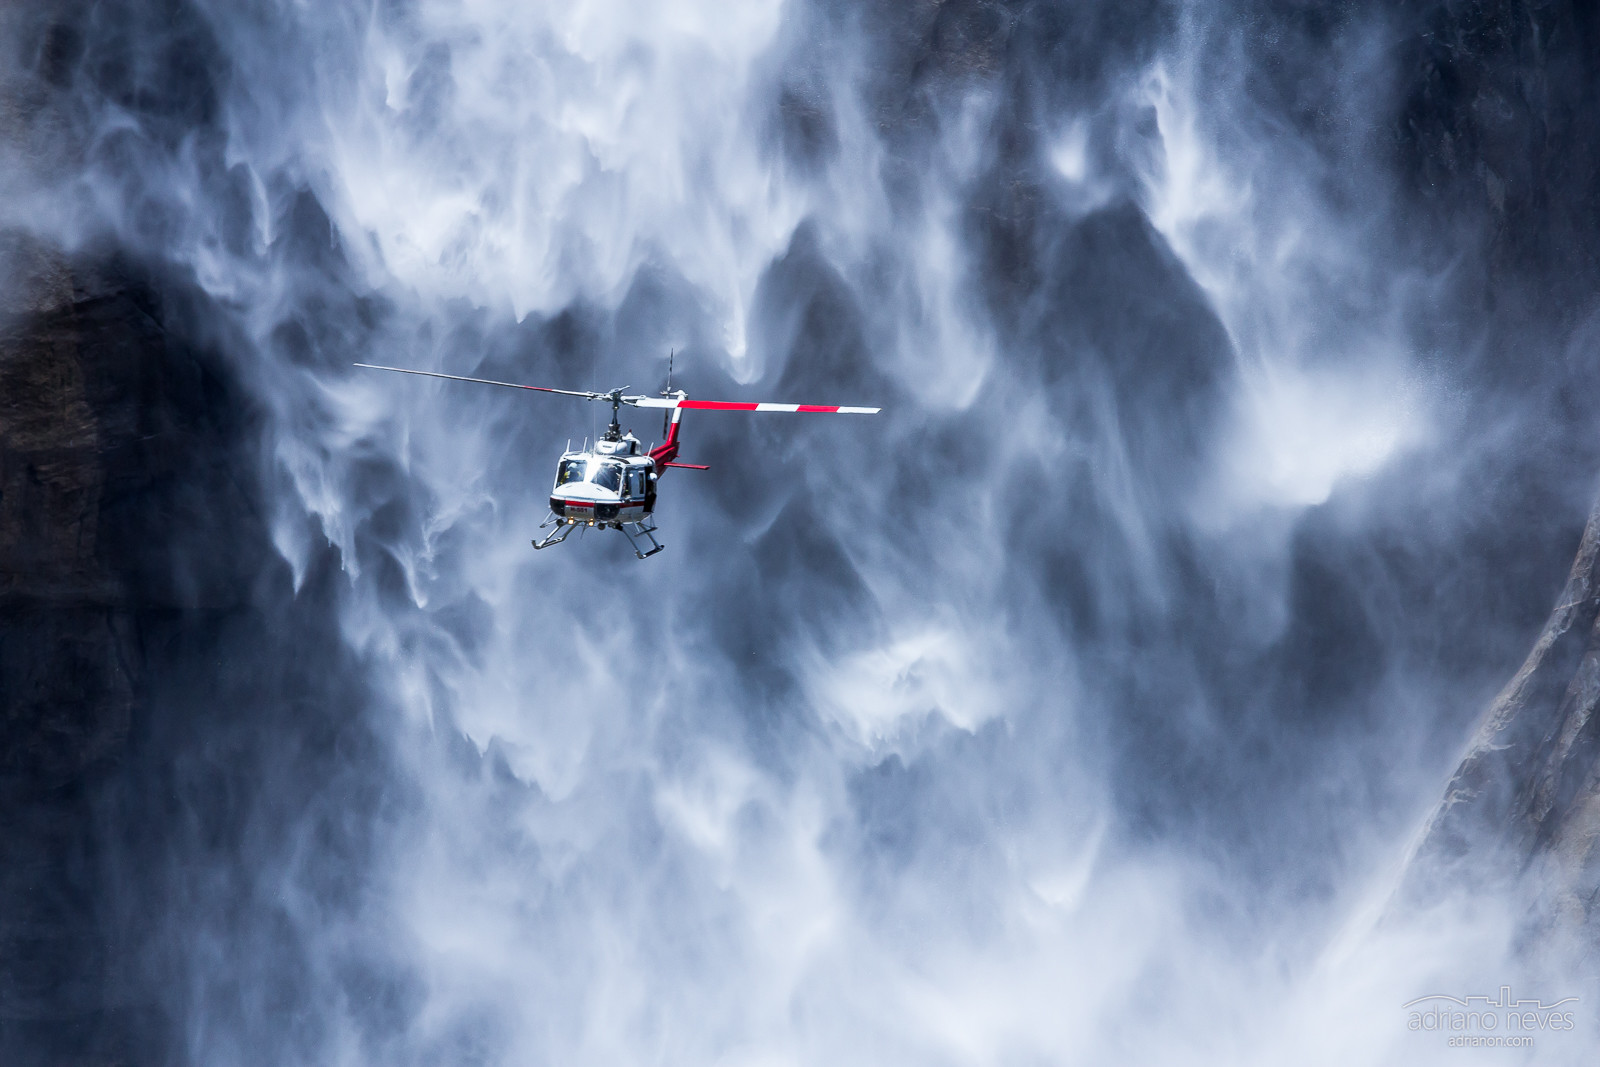 A dramatic background sets the stage for the rescue operation of a fallen hiker. Click for More...